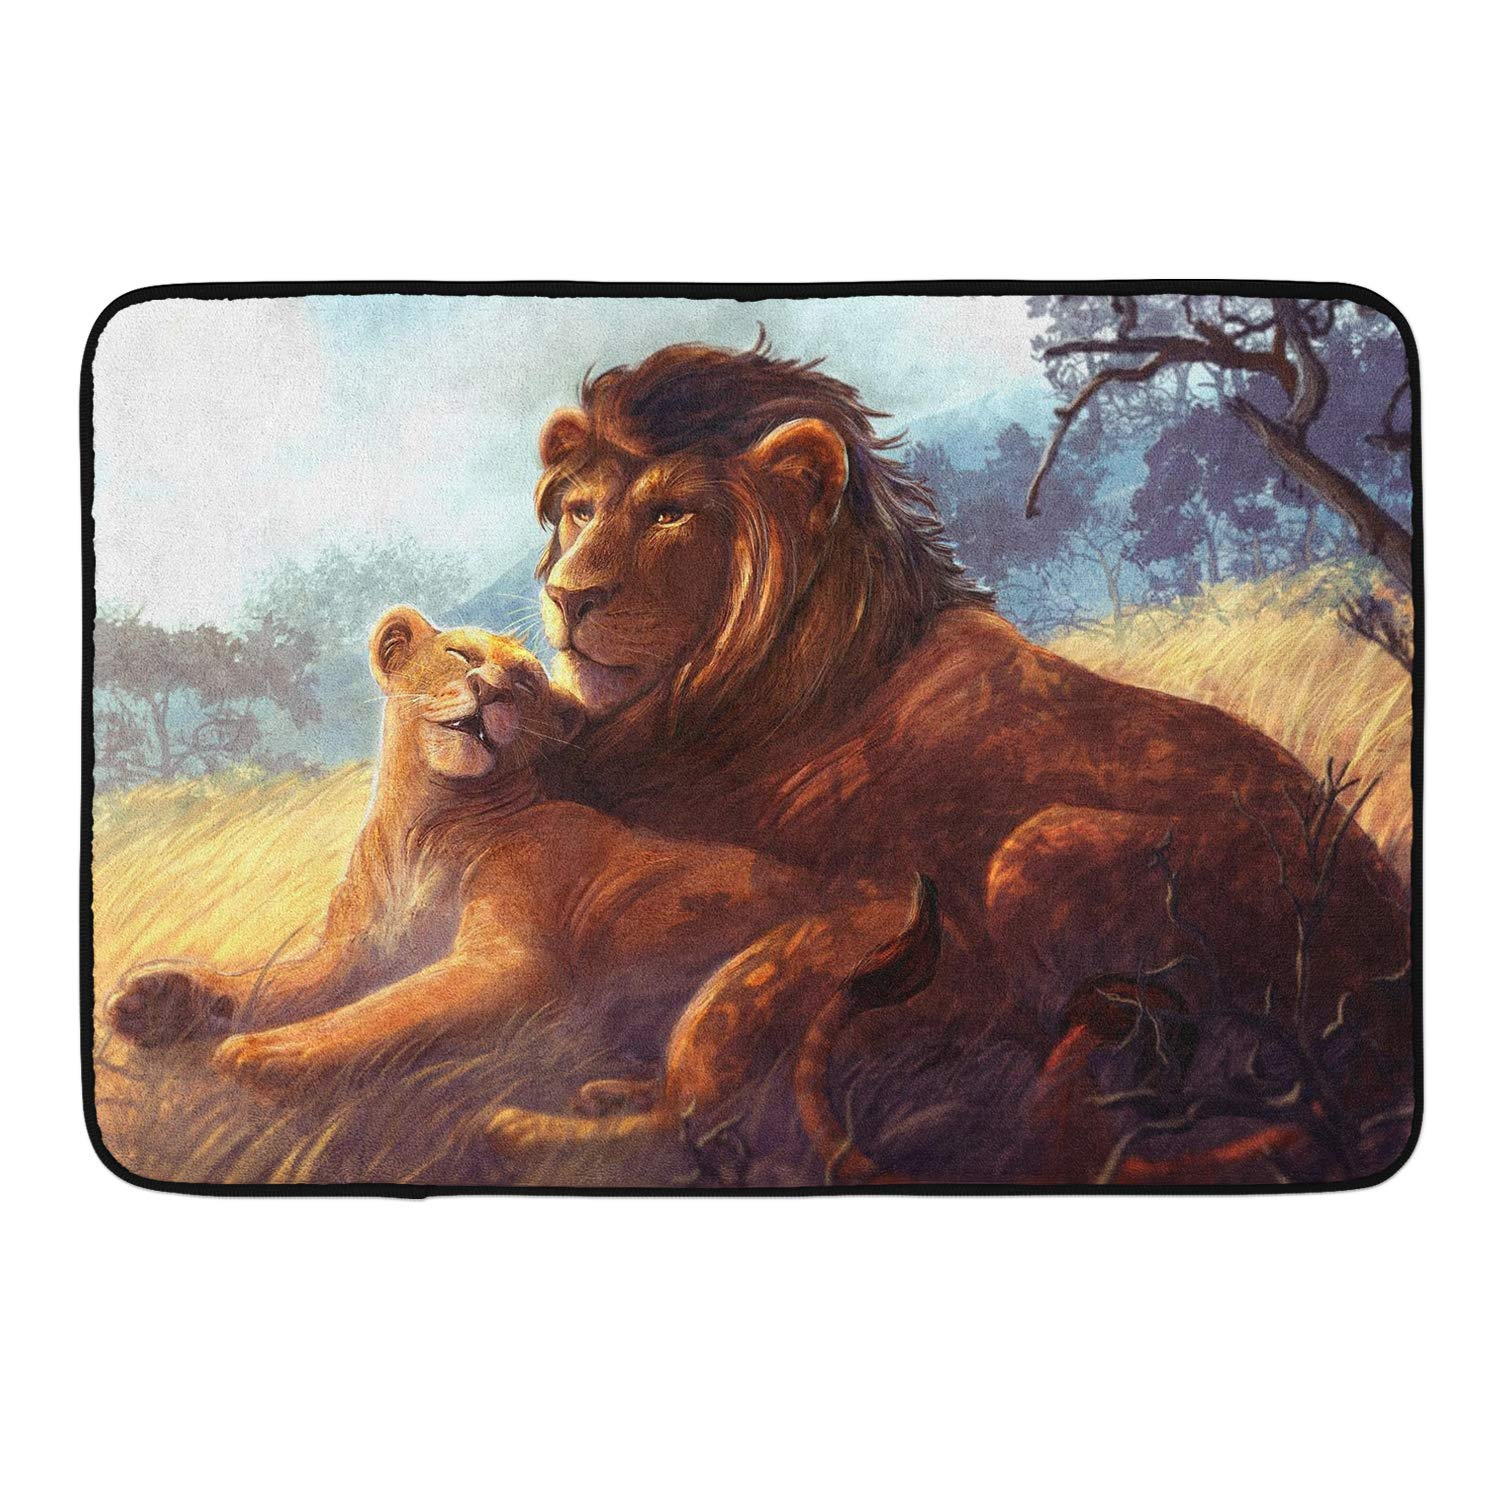 CIGOCI Anti-Slip Memory Foam Bath Mat Shower Rugs - Lion Fall in Love - 18 x 36 Inch Absorbent Quick-Dry Floor Mat Carpets Home Decor Bathroom Tub Kichen Rugs by CIGOCI (Image #1)